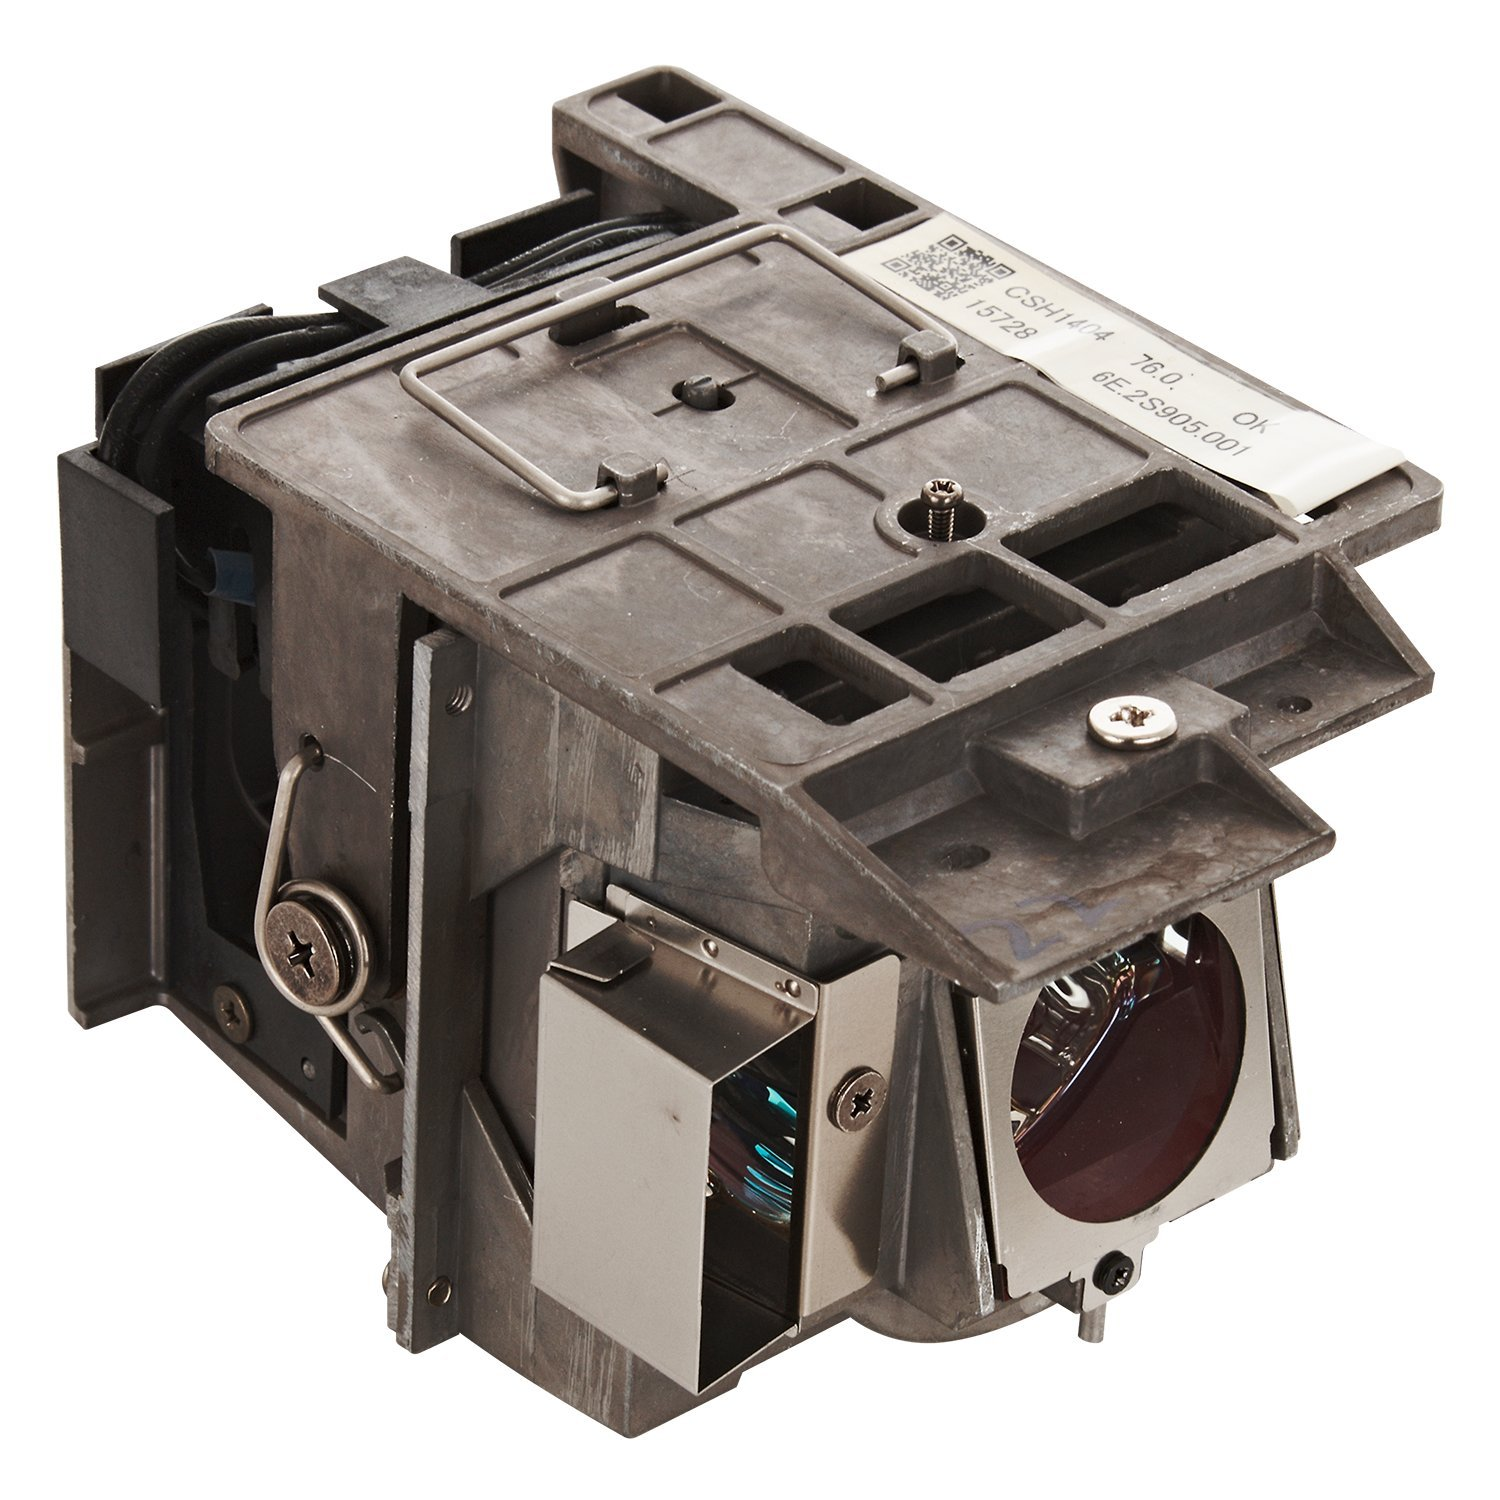 ViewSonic RLC-103 Projector Replacement Lamp for ViewSonic PRO8510L, PRO8530HDL Projectors by ViewSonic (Image #1)